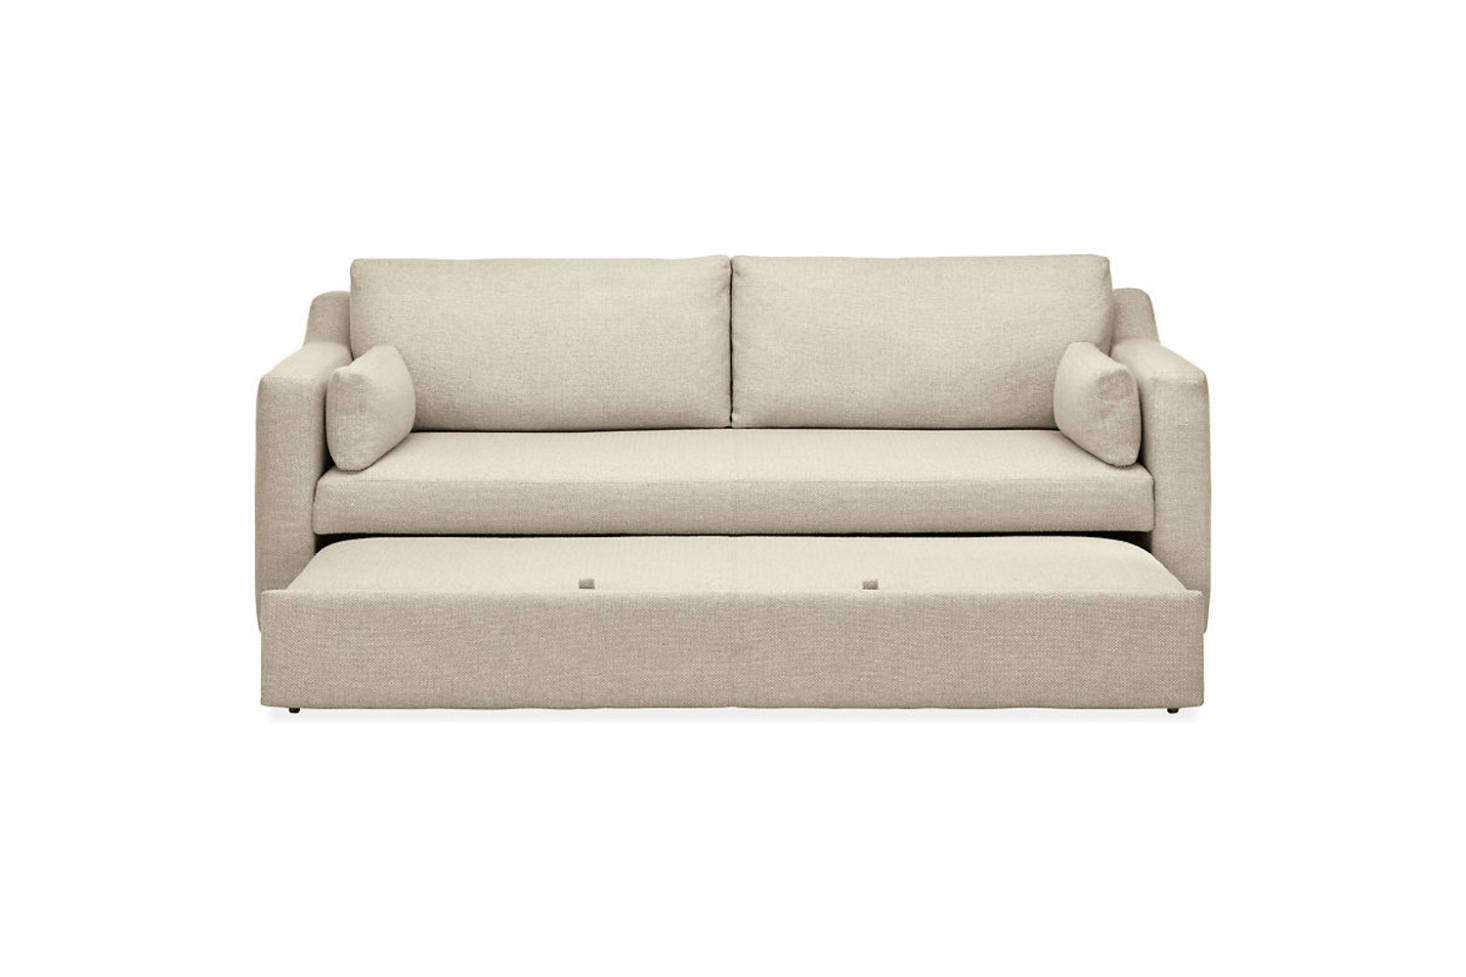 Ikea Sofa Vallentuna Erfahrung 10 Easy Pieces Good Looking Sleeper Sofas Remodelista